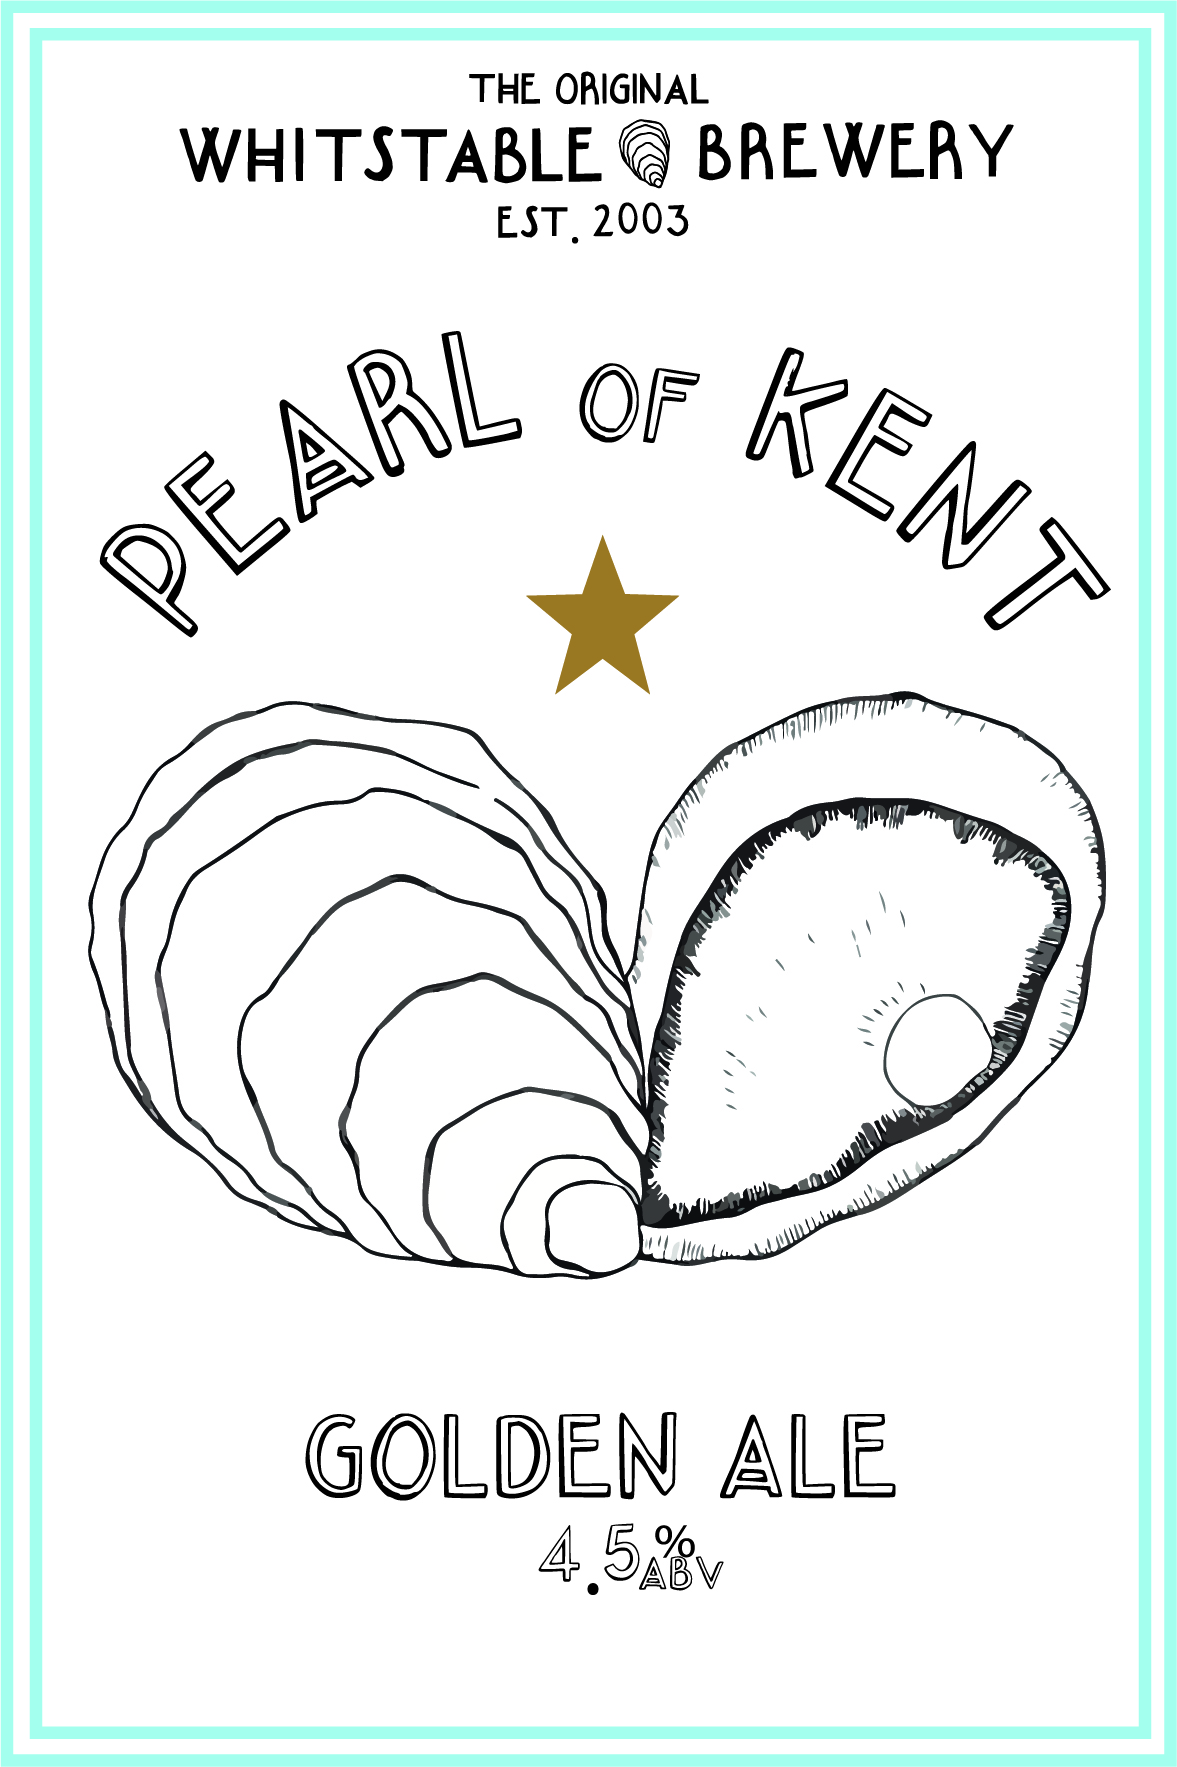 Pearl Of Kent Golden Ale